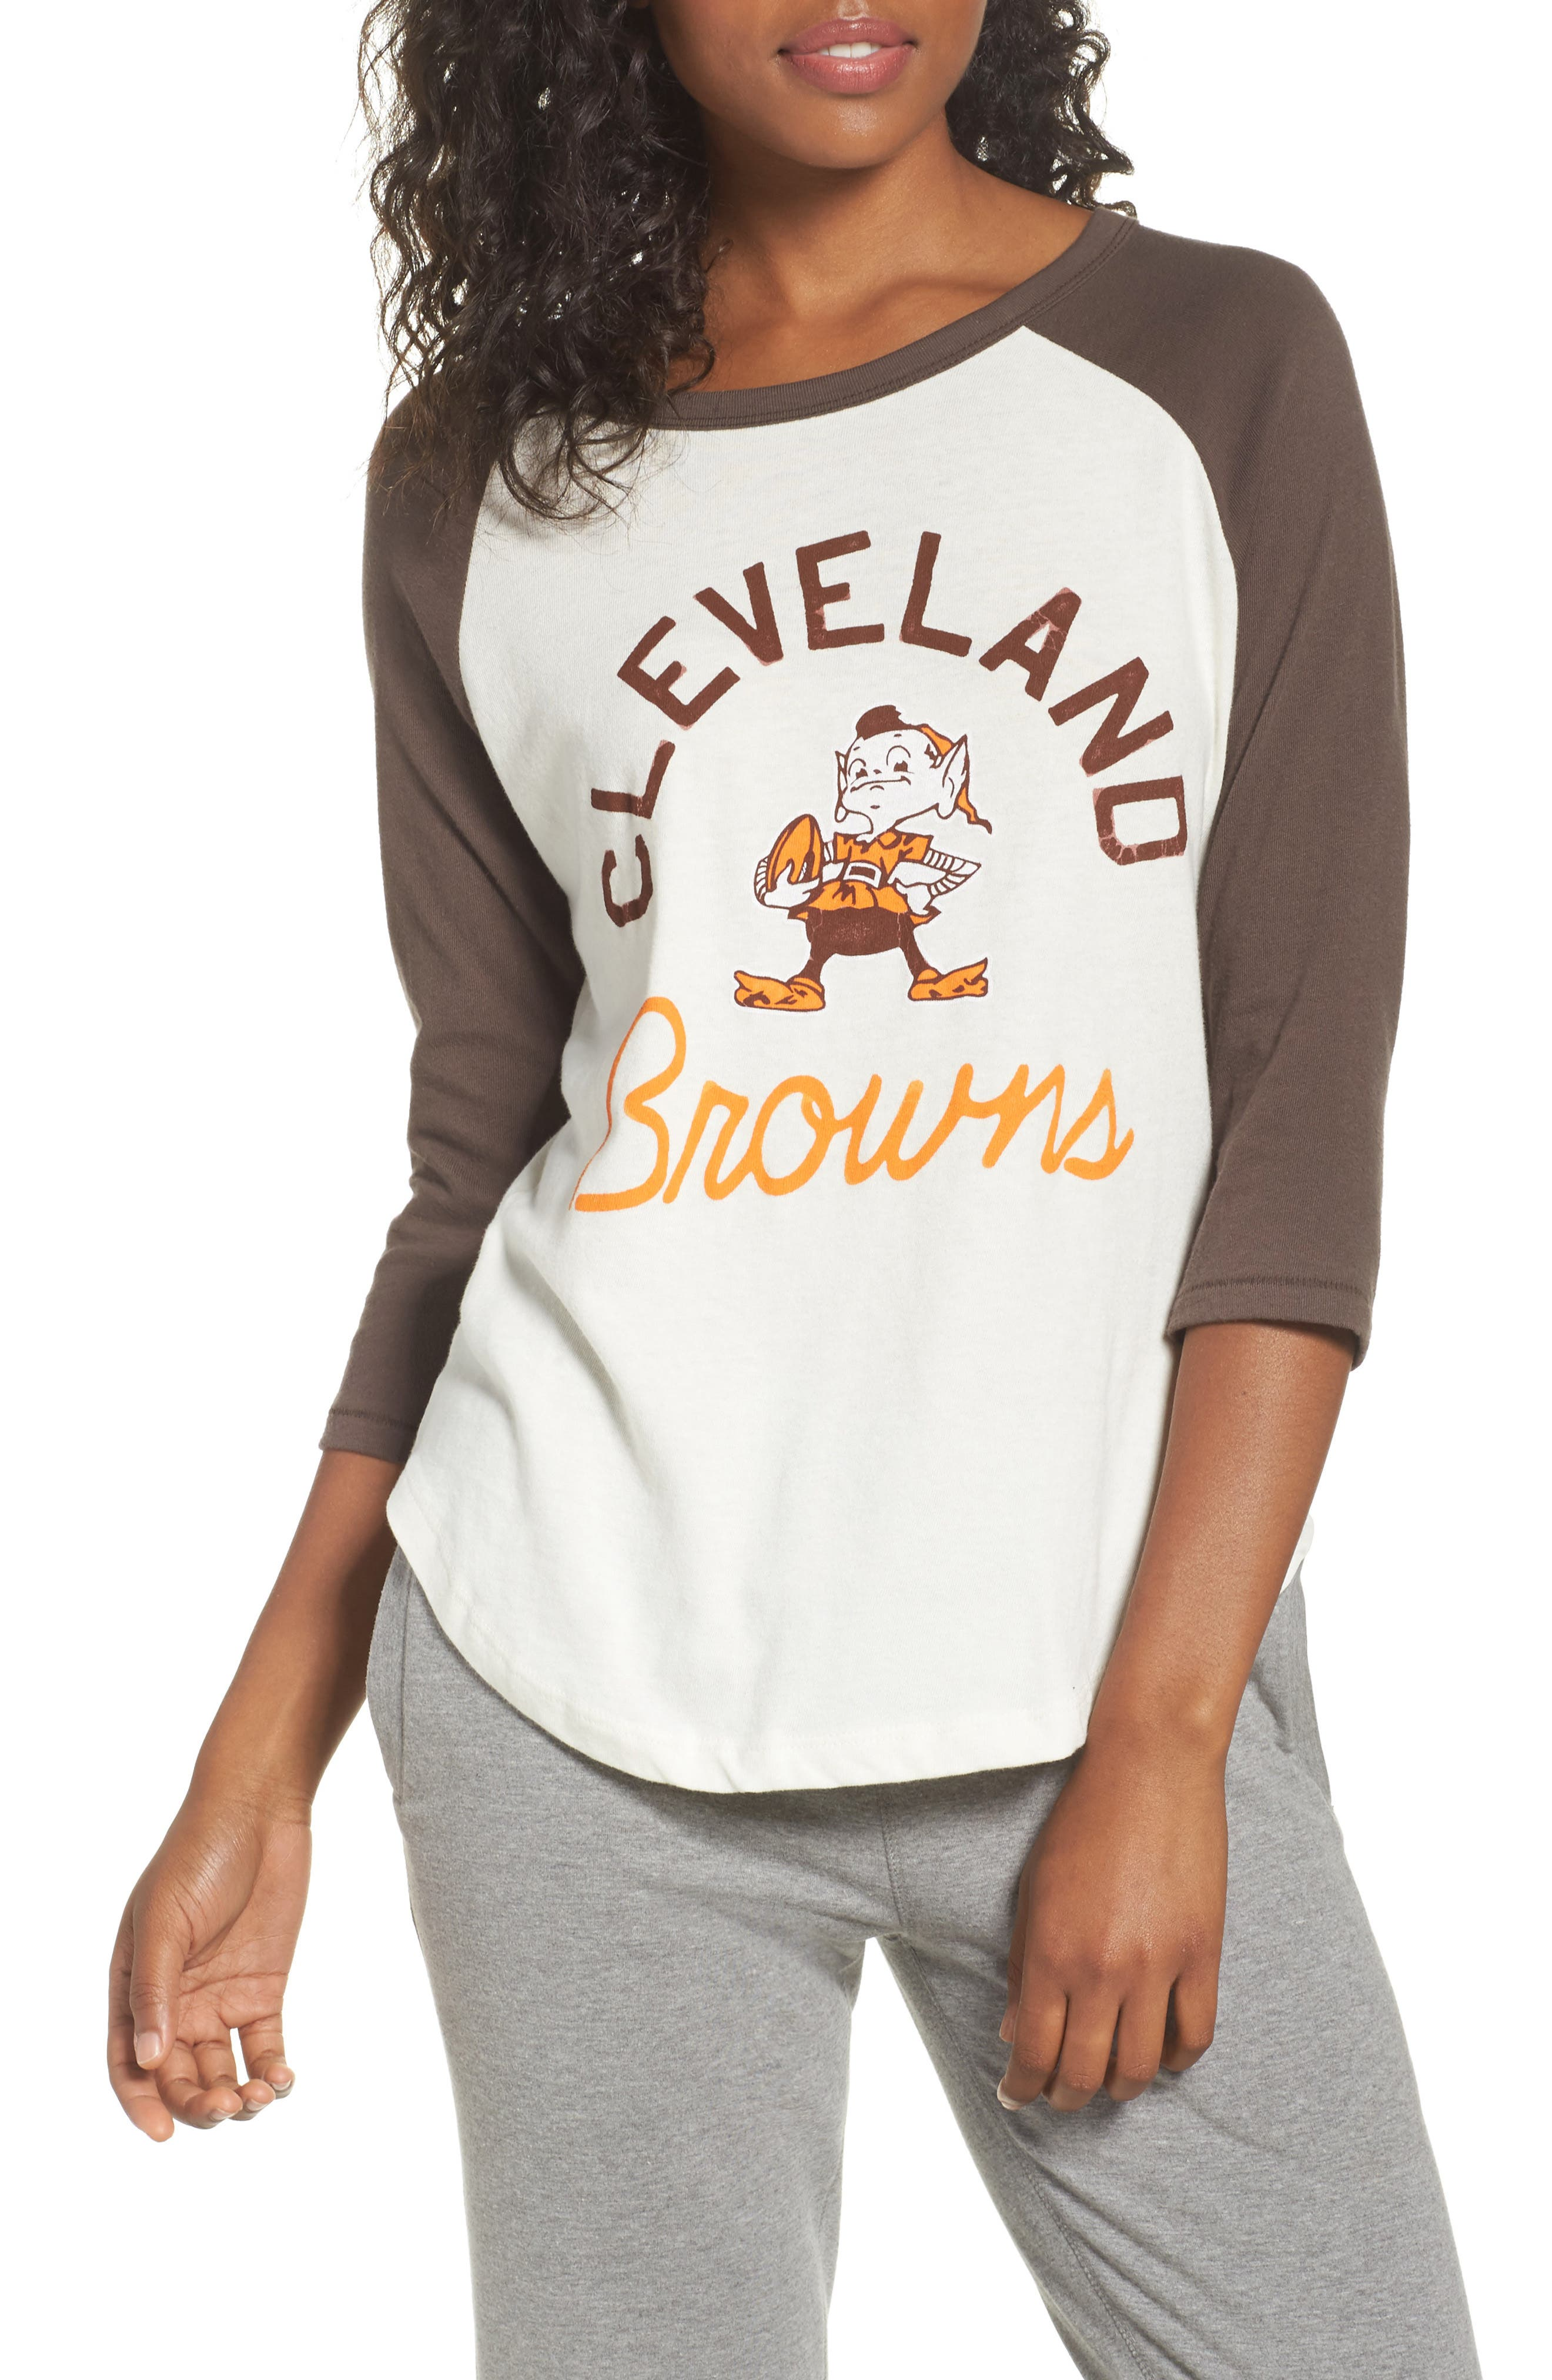 NFL Cleveland Browns Raglan Tee,                             Main thumbnail 1, color,                             189